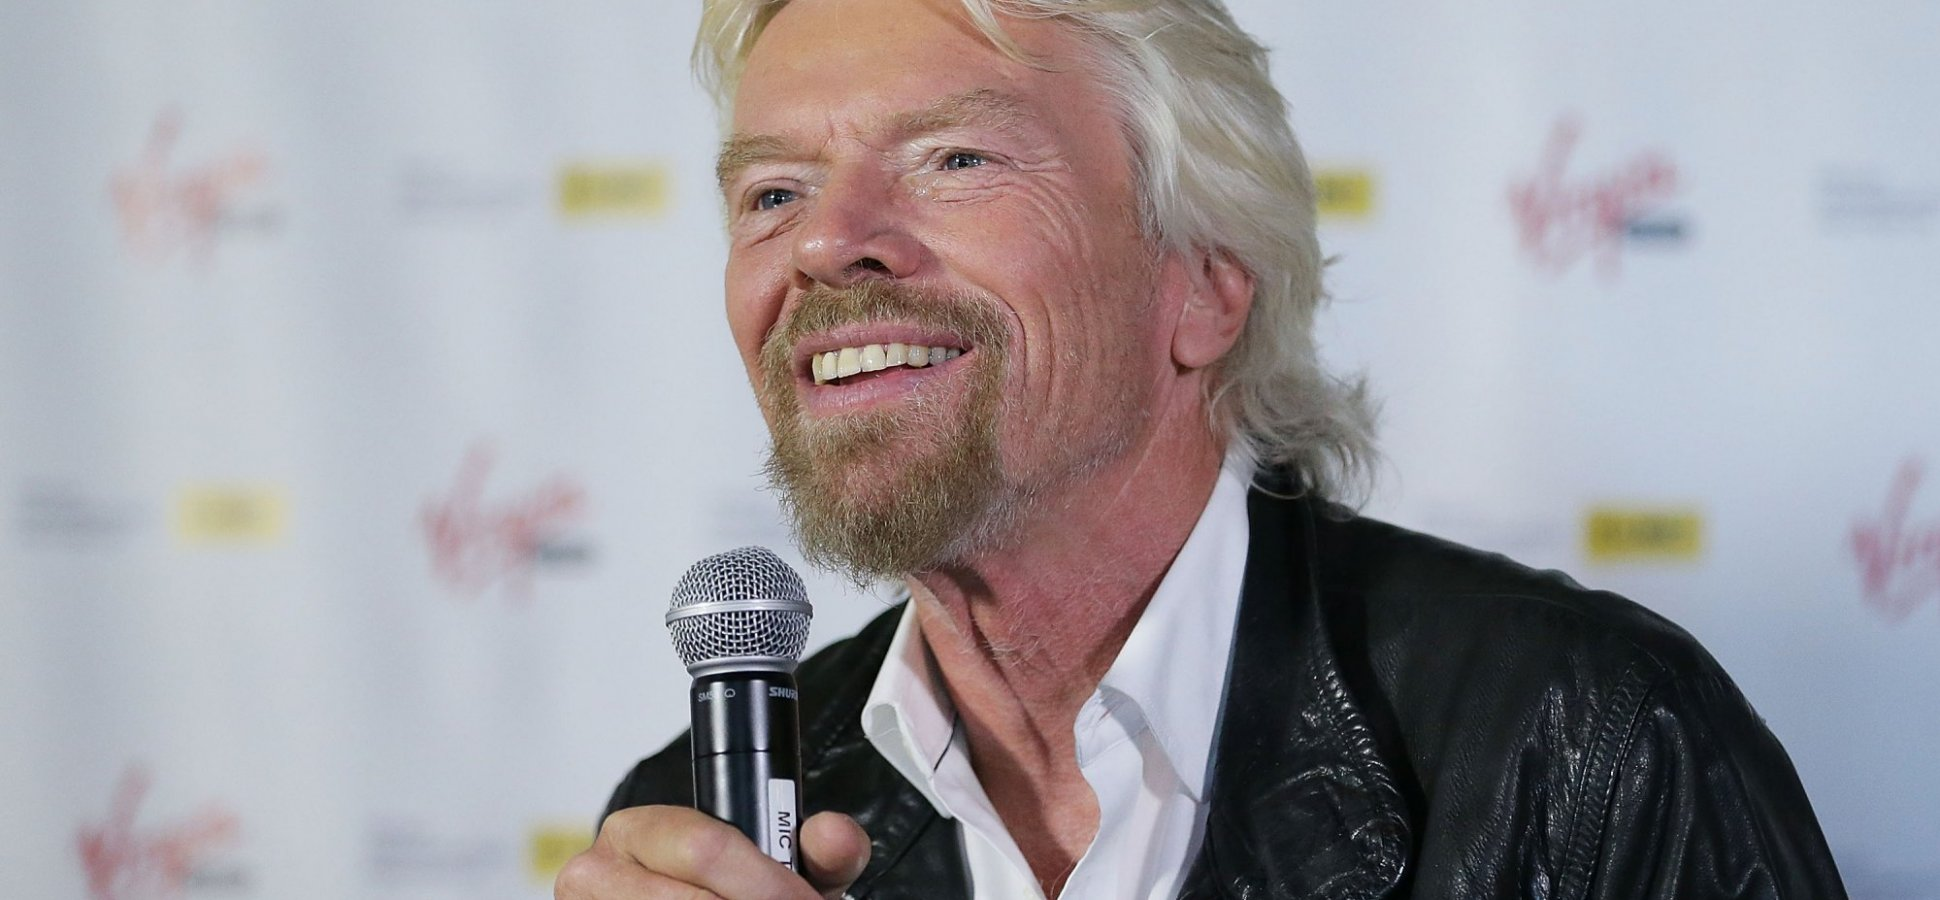 Here's Why Richard Branson's Advice on Coping With Job Rejection is Priceless